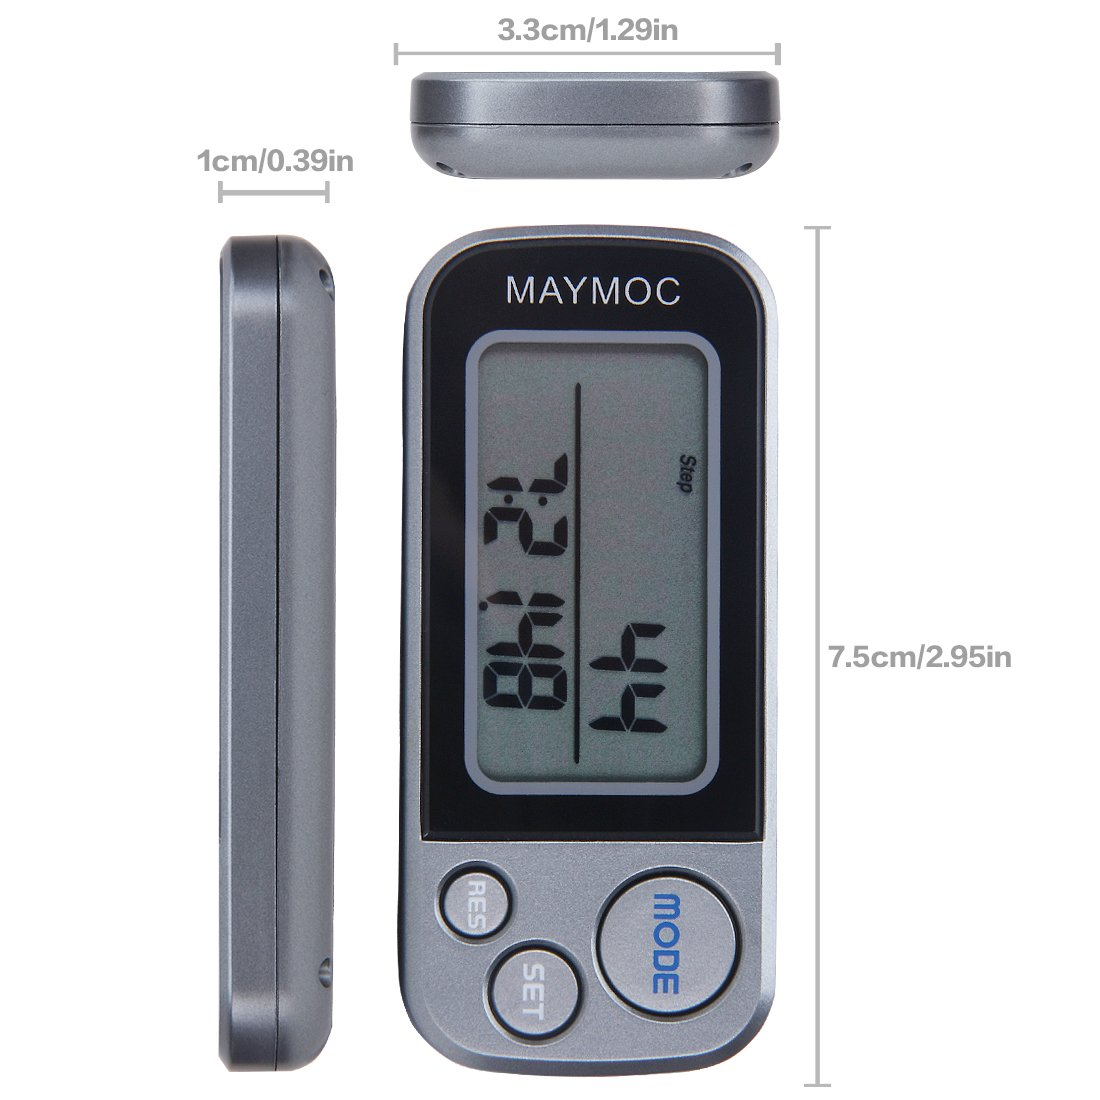 MAYMOC 3D Pedometer and Step Tracker for Walking Steps Miles//Km Accurate Portable Clip on Sports Fitness Daily Target Monitor Exercise Distance 30 Days Memory